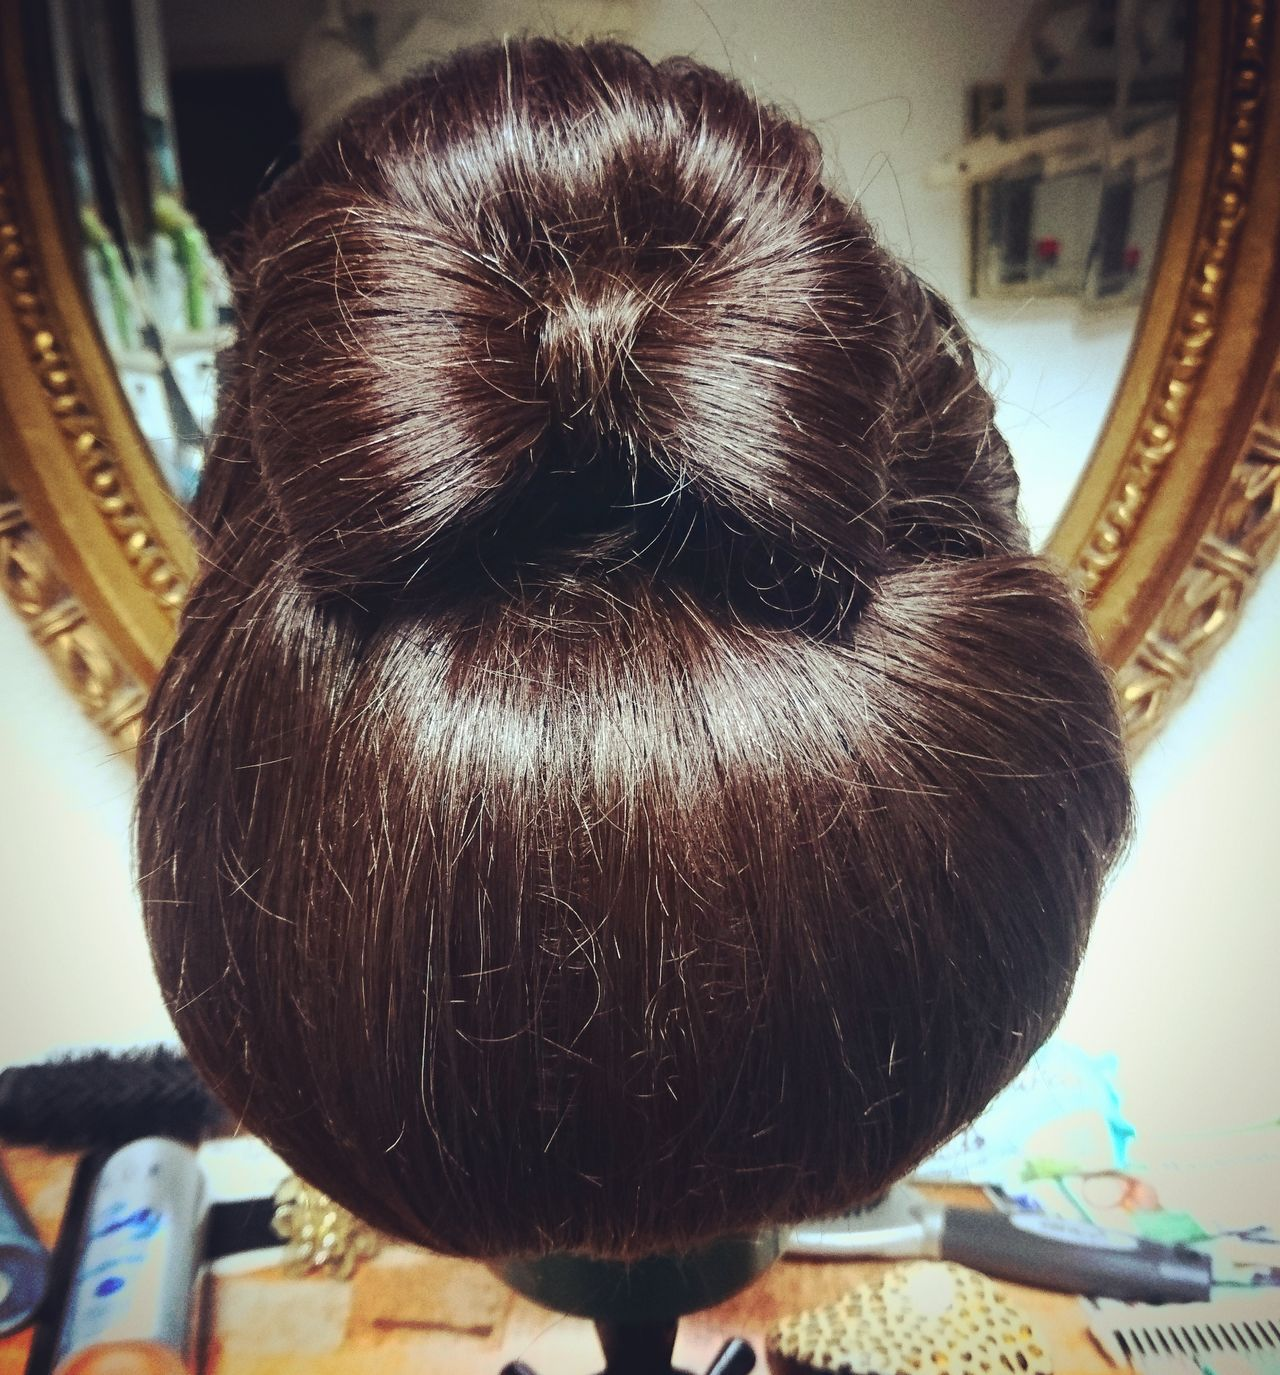 Close-up No People Indoors  Day Flower Head Hairstyle Hair Haircolor Hairdresser Hairs Hairsalon Hairfashion Hairtrends Hair Accessories Hair Care Hairstylist Hairdye HairExtensions PetsHair Style Hair Salon Haircolour Haircare Haare Animal Themes